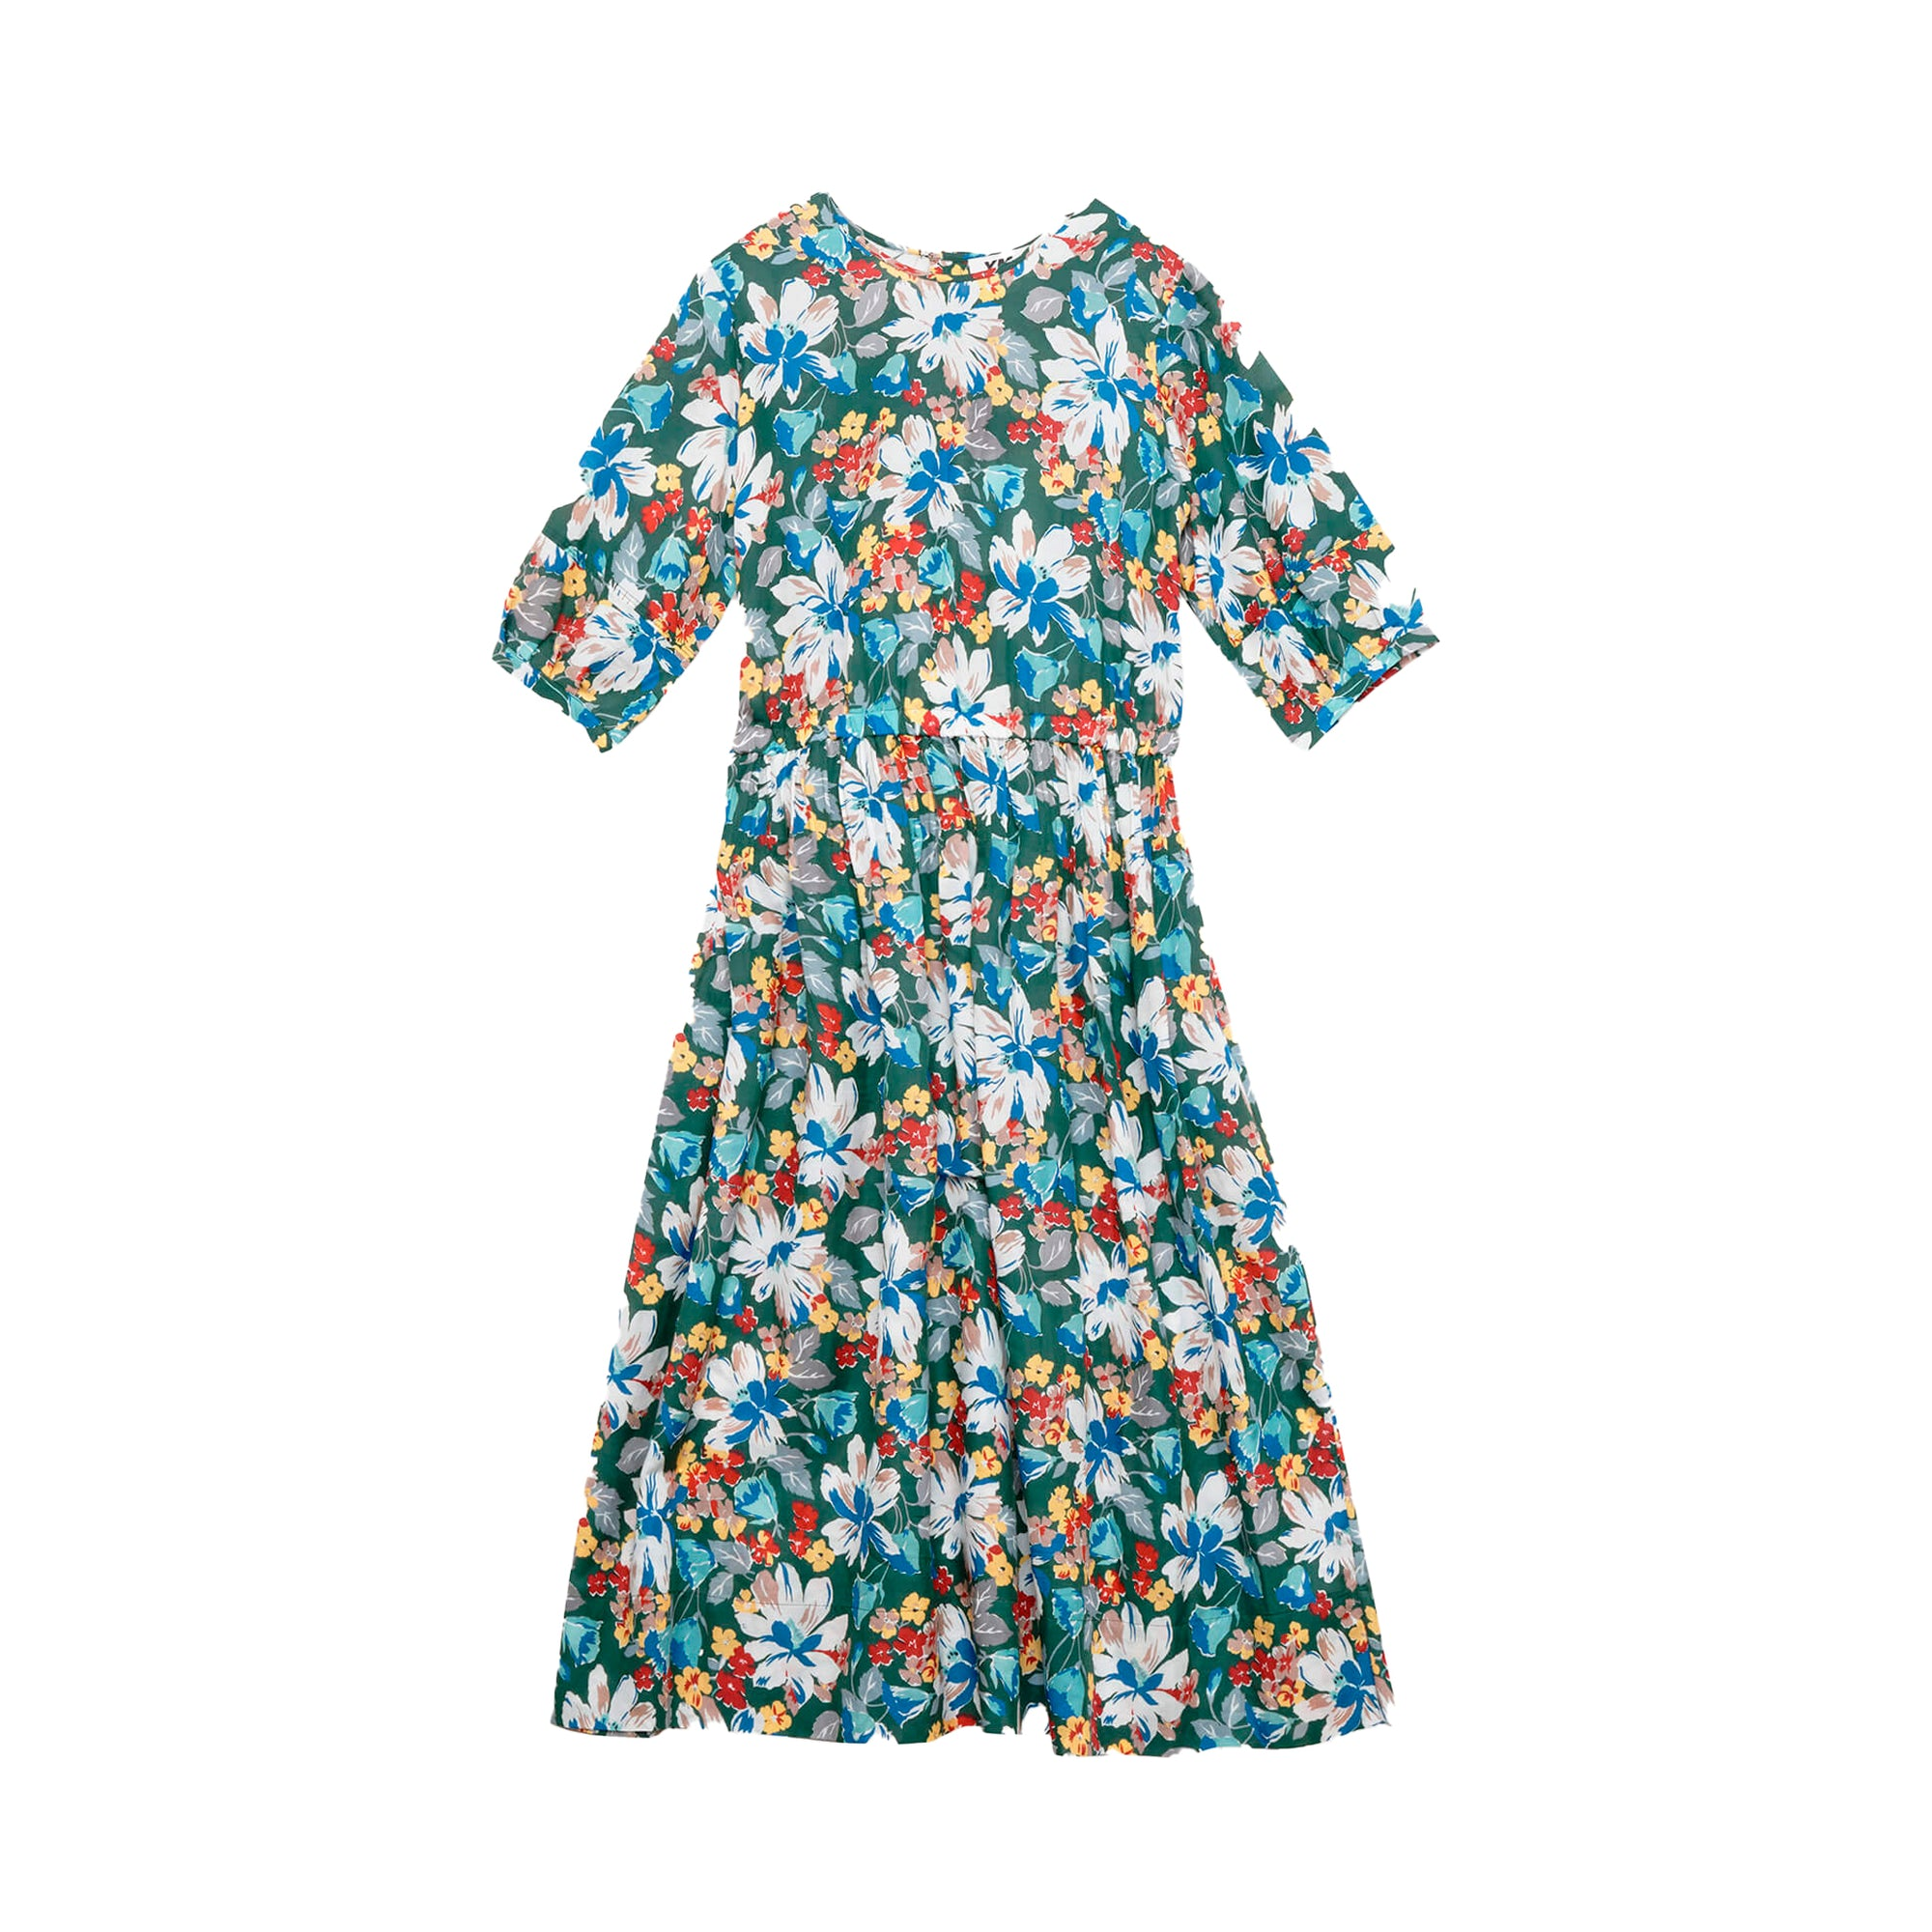 YMC Womens Garden Dress: Multi - The Union Project